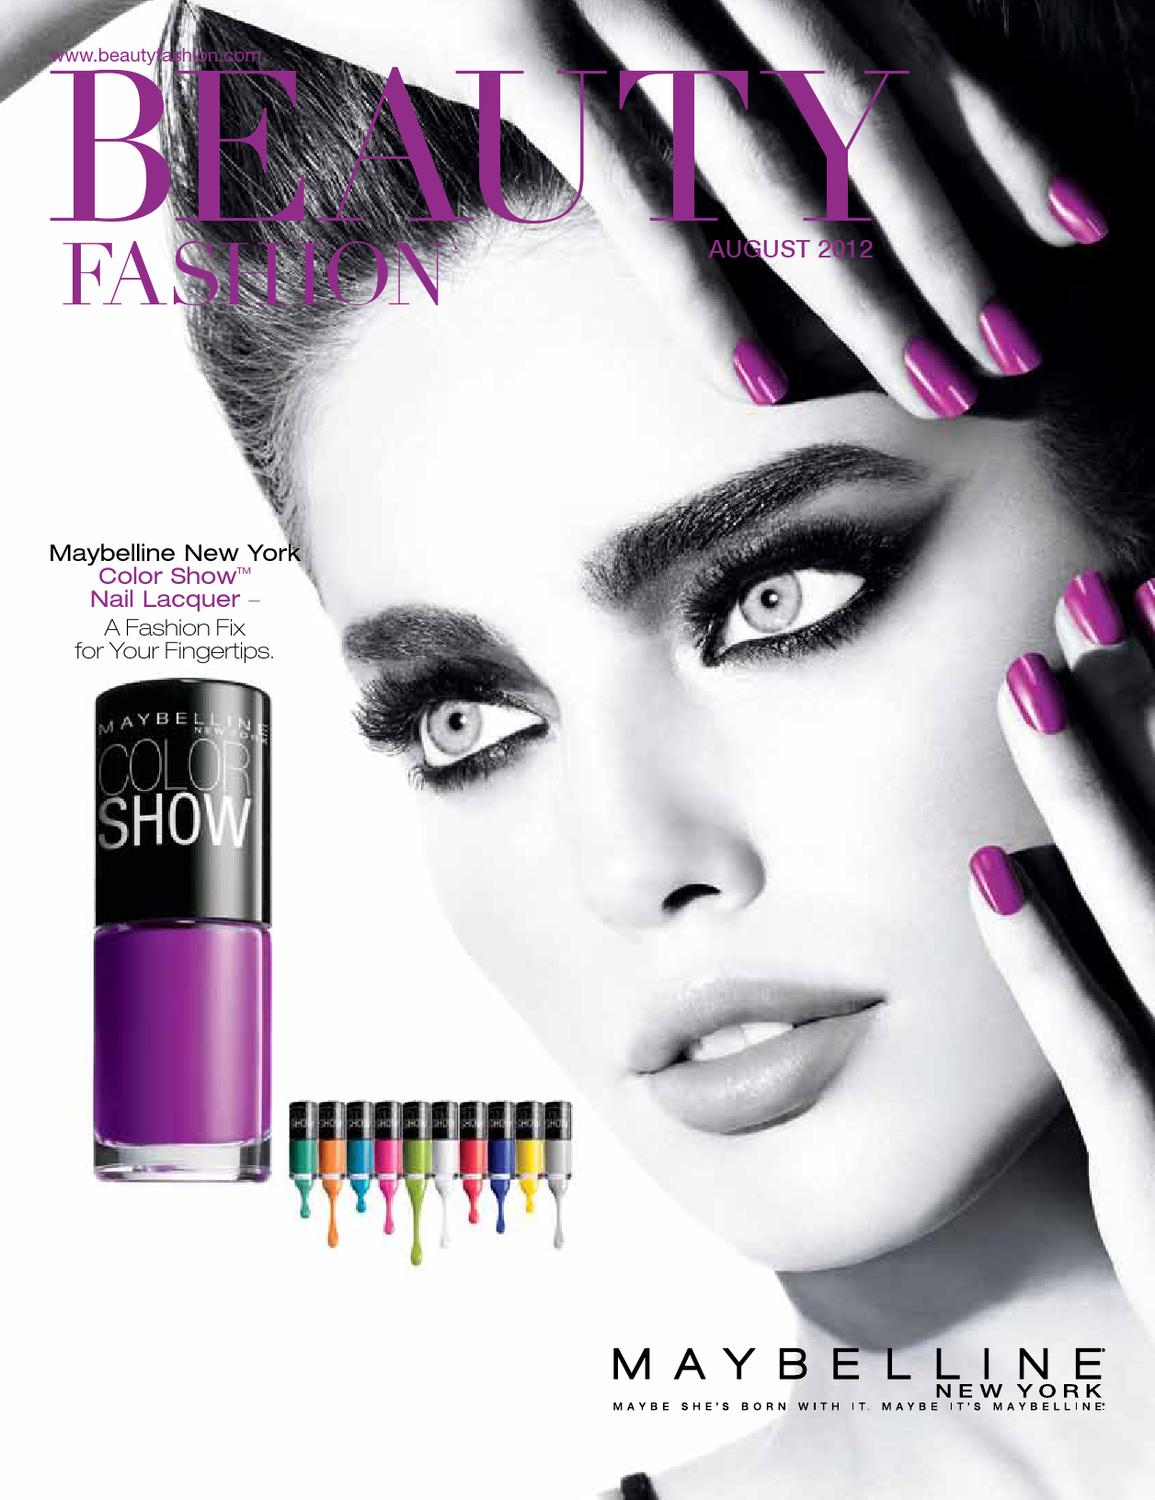 d0fcf91bba0 Beauty Fashion August 2012 by Beauty Fashion Inc. - issuu